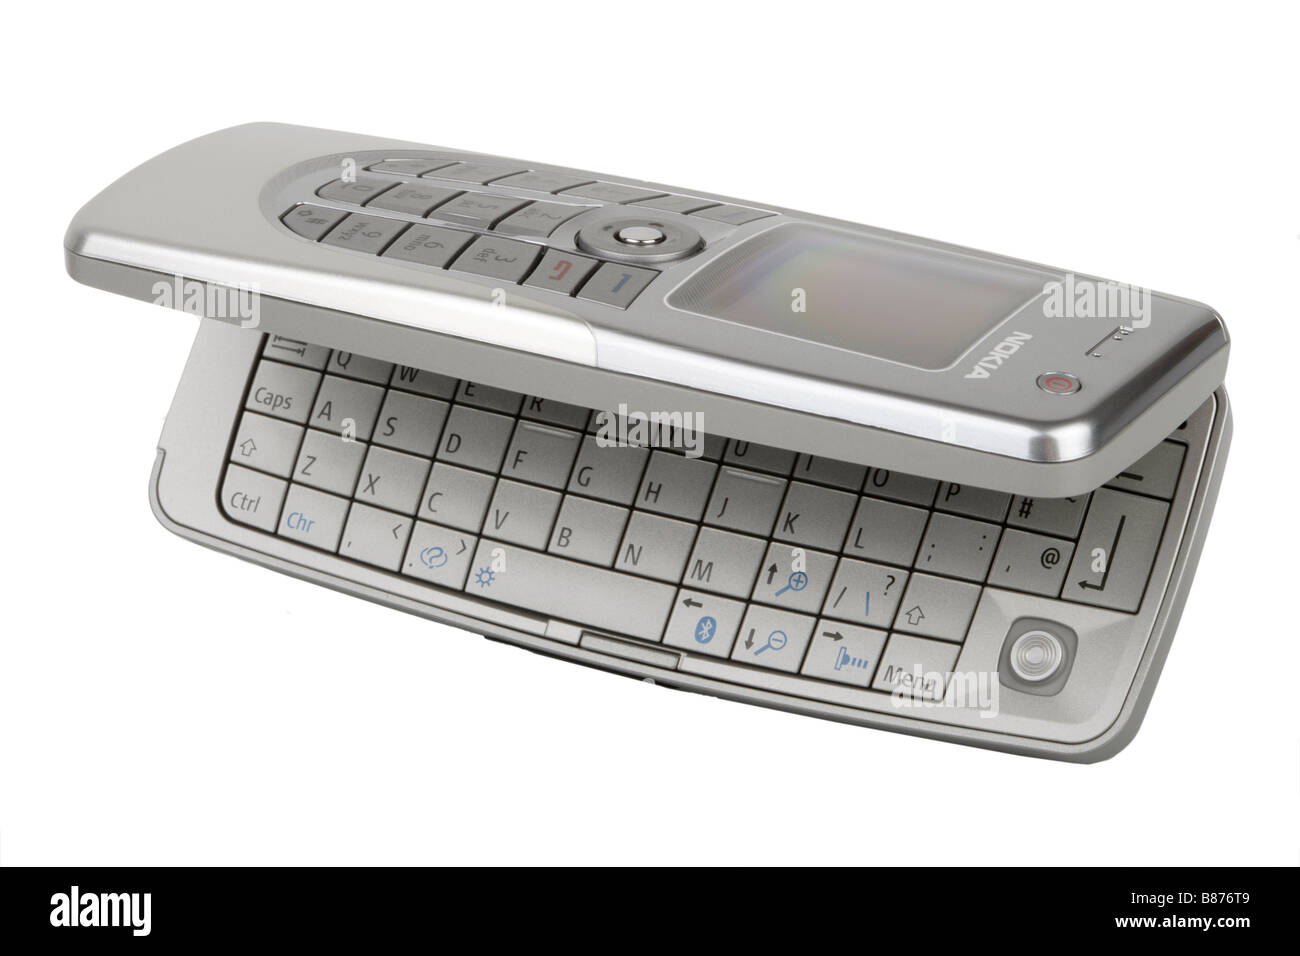 Nokia Cellphone Stock Photos Images Alamy Cell Phone Mobile Telephone And Keyboard Image